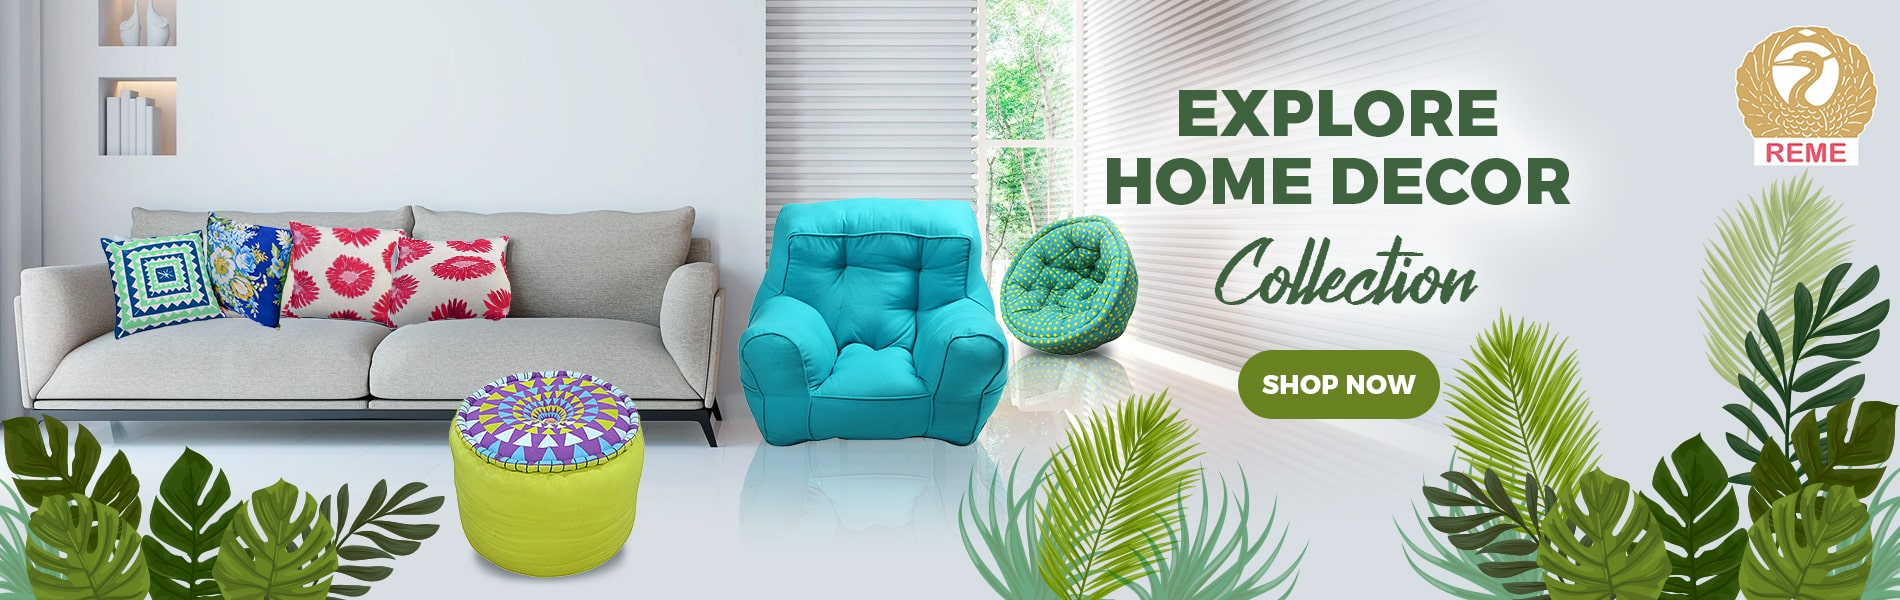 Home Decor collection India